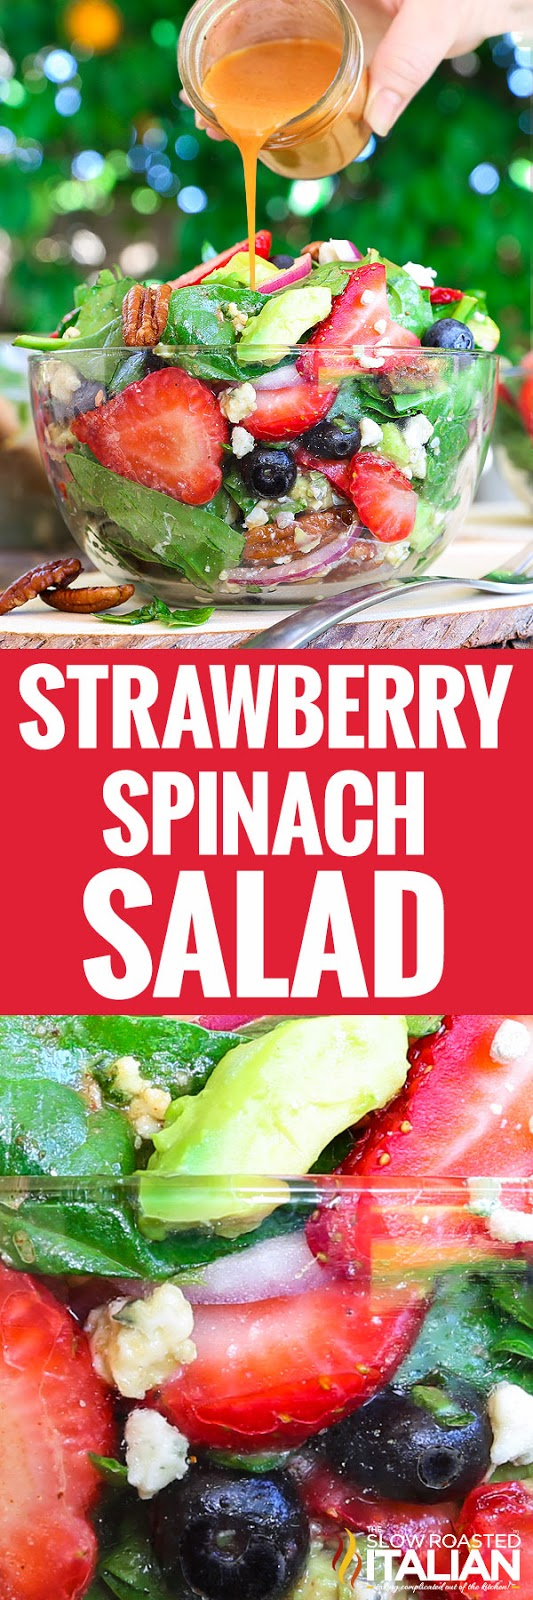 titled photo for Pinterest (and shown): Strawberry Spinach Salad